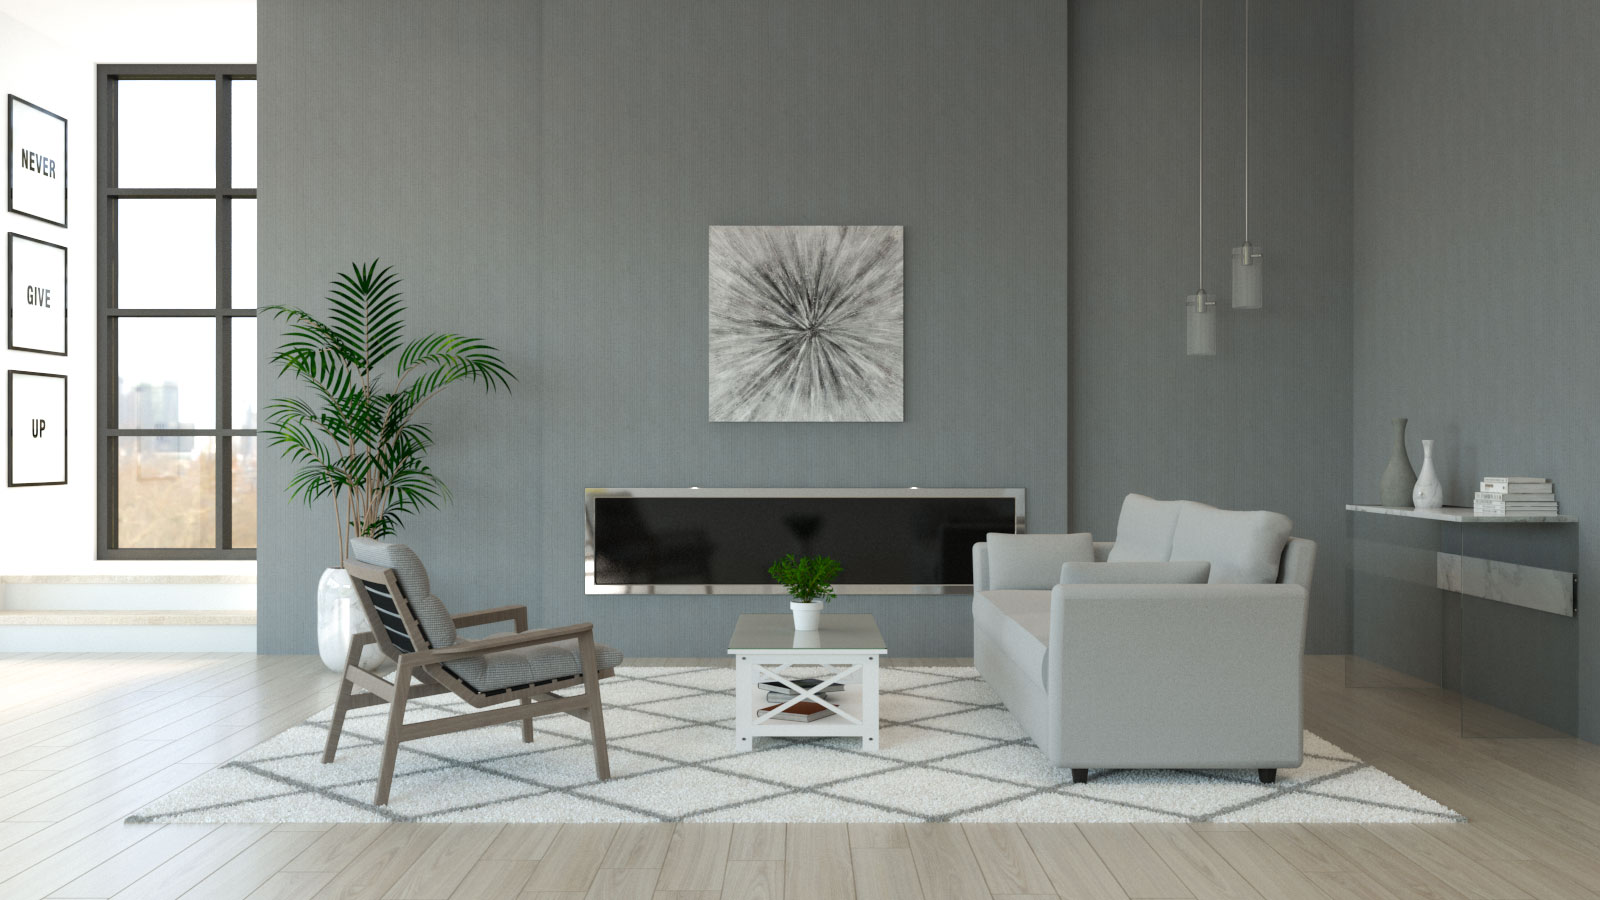 Living room with light gray furniture and medium gray walls